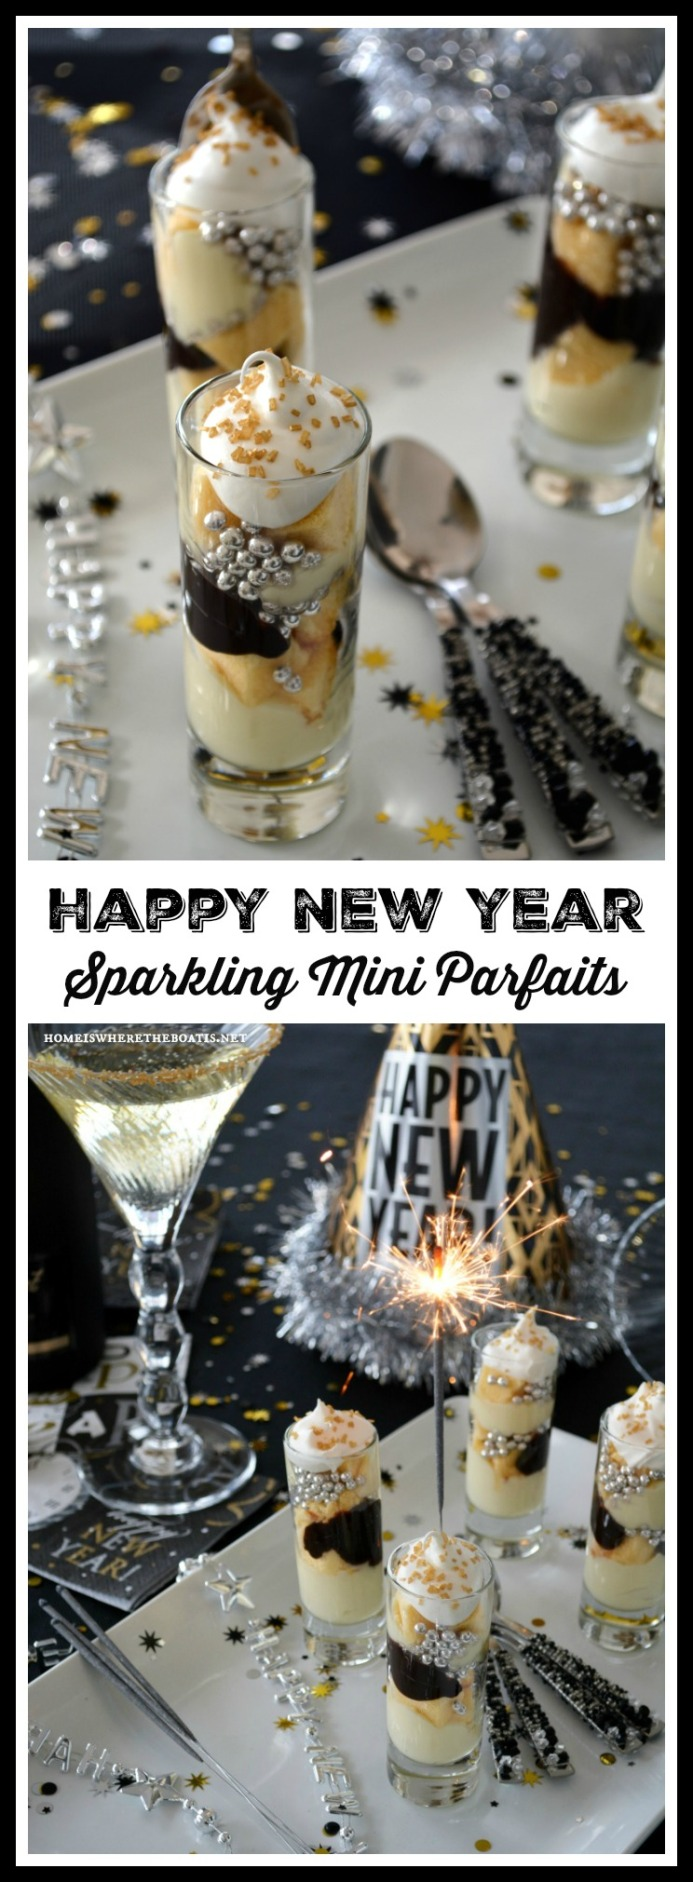 Happy New Year Sparkling Mini Parfaits